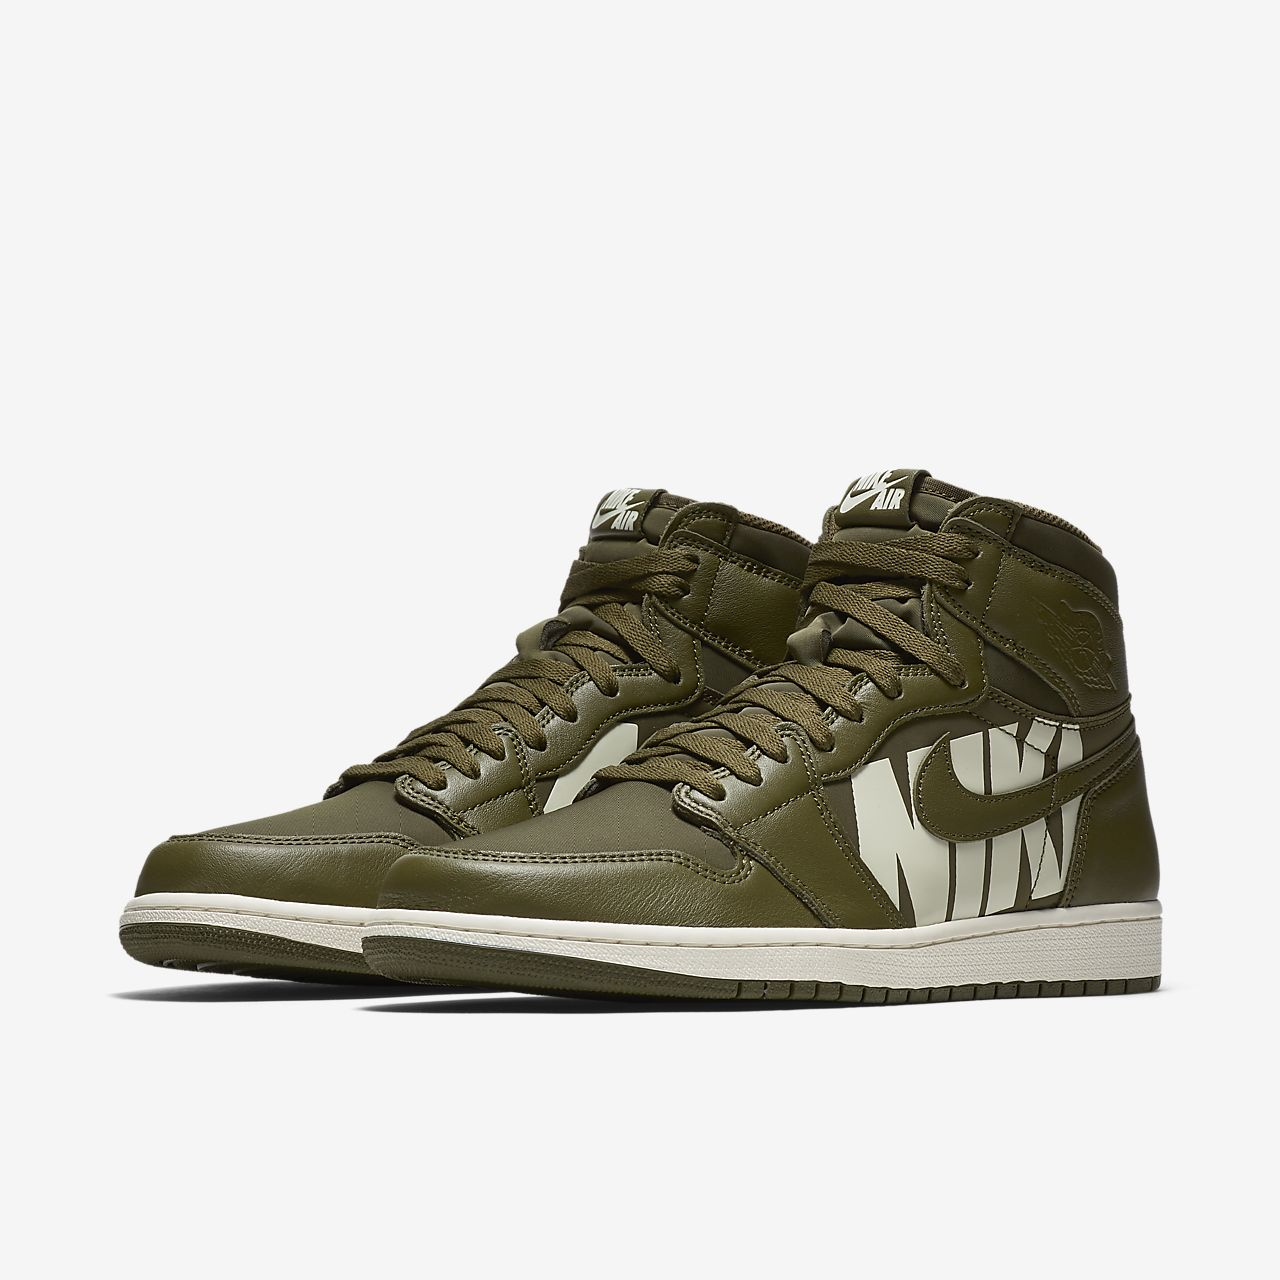 new styles 835d2 ac735 ... Air Jordan 1 Retro High OG Shoe